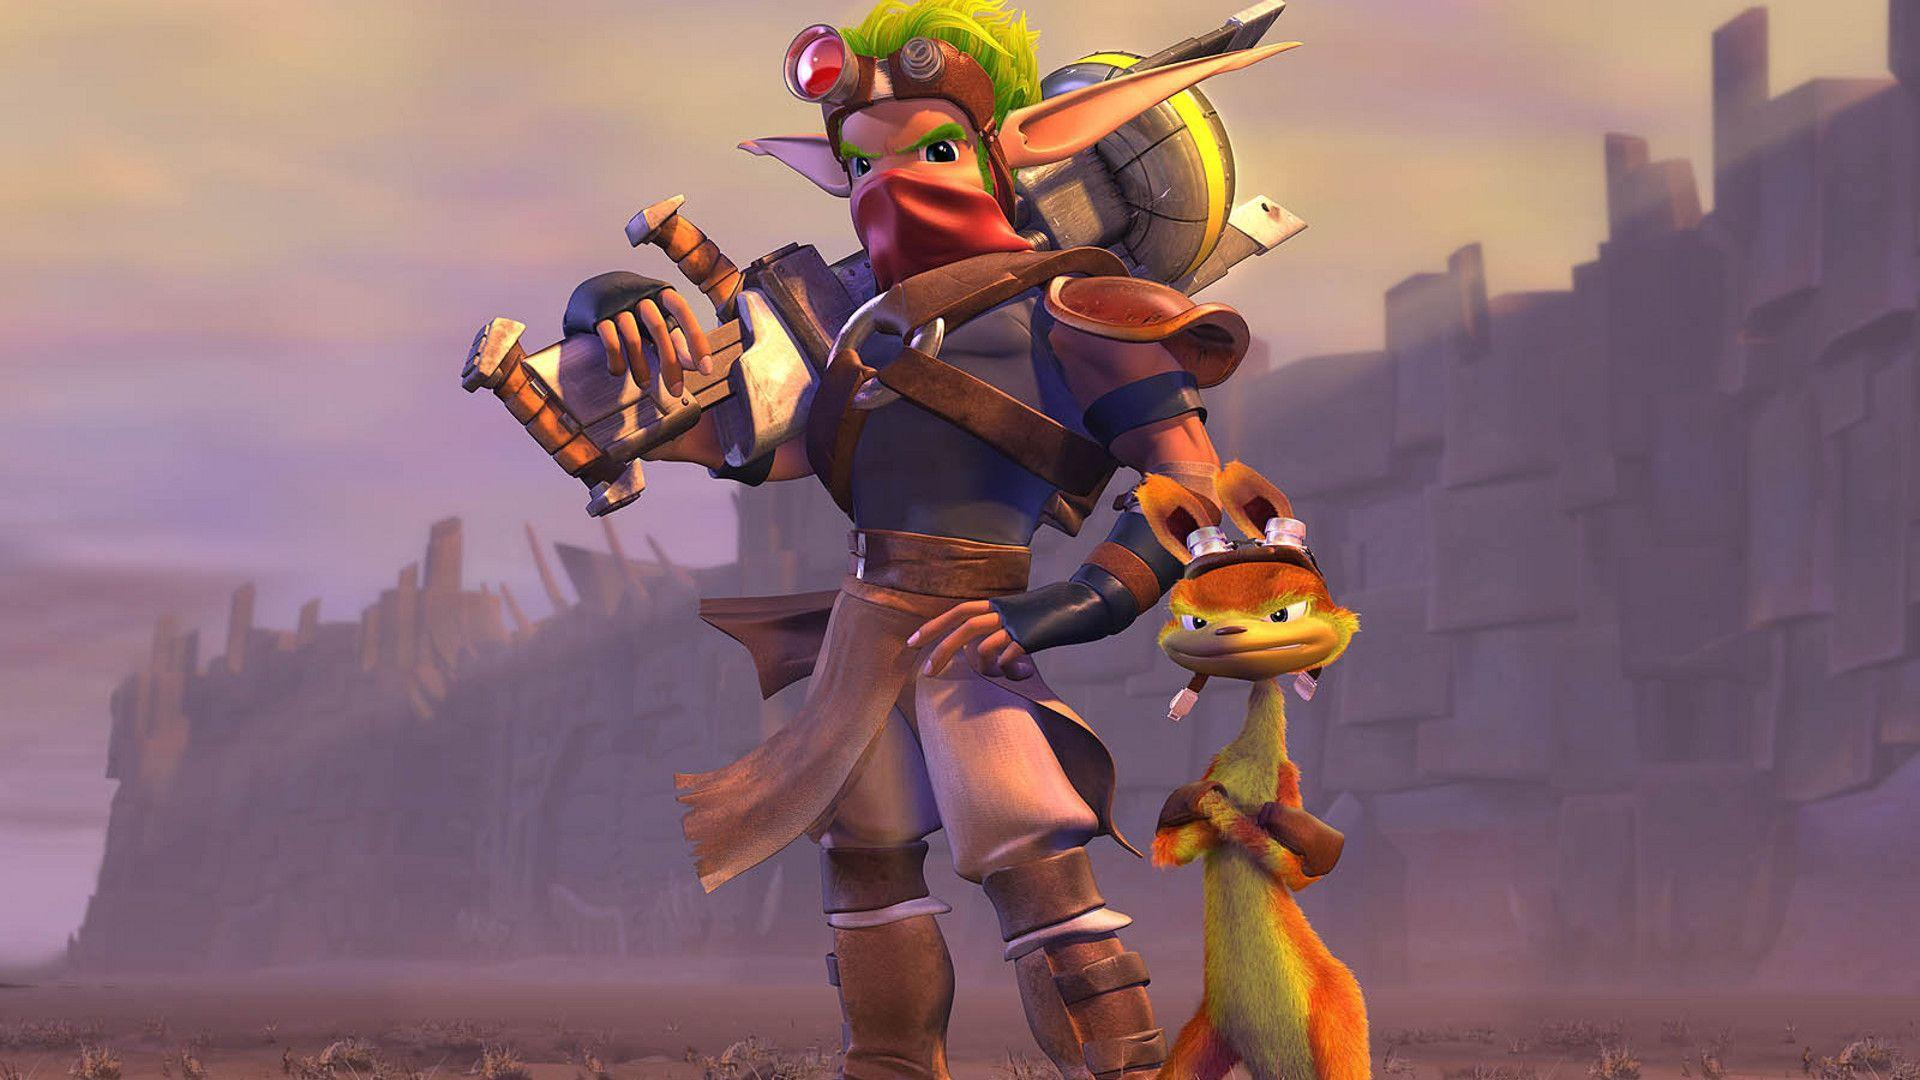 jak 3 download wallpapers